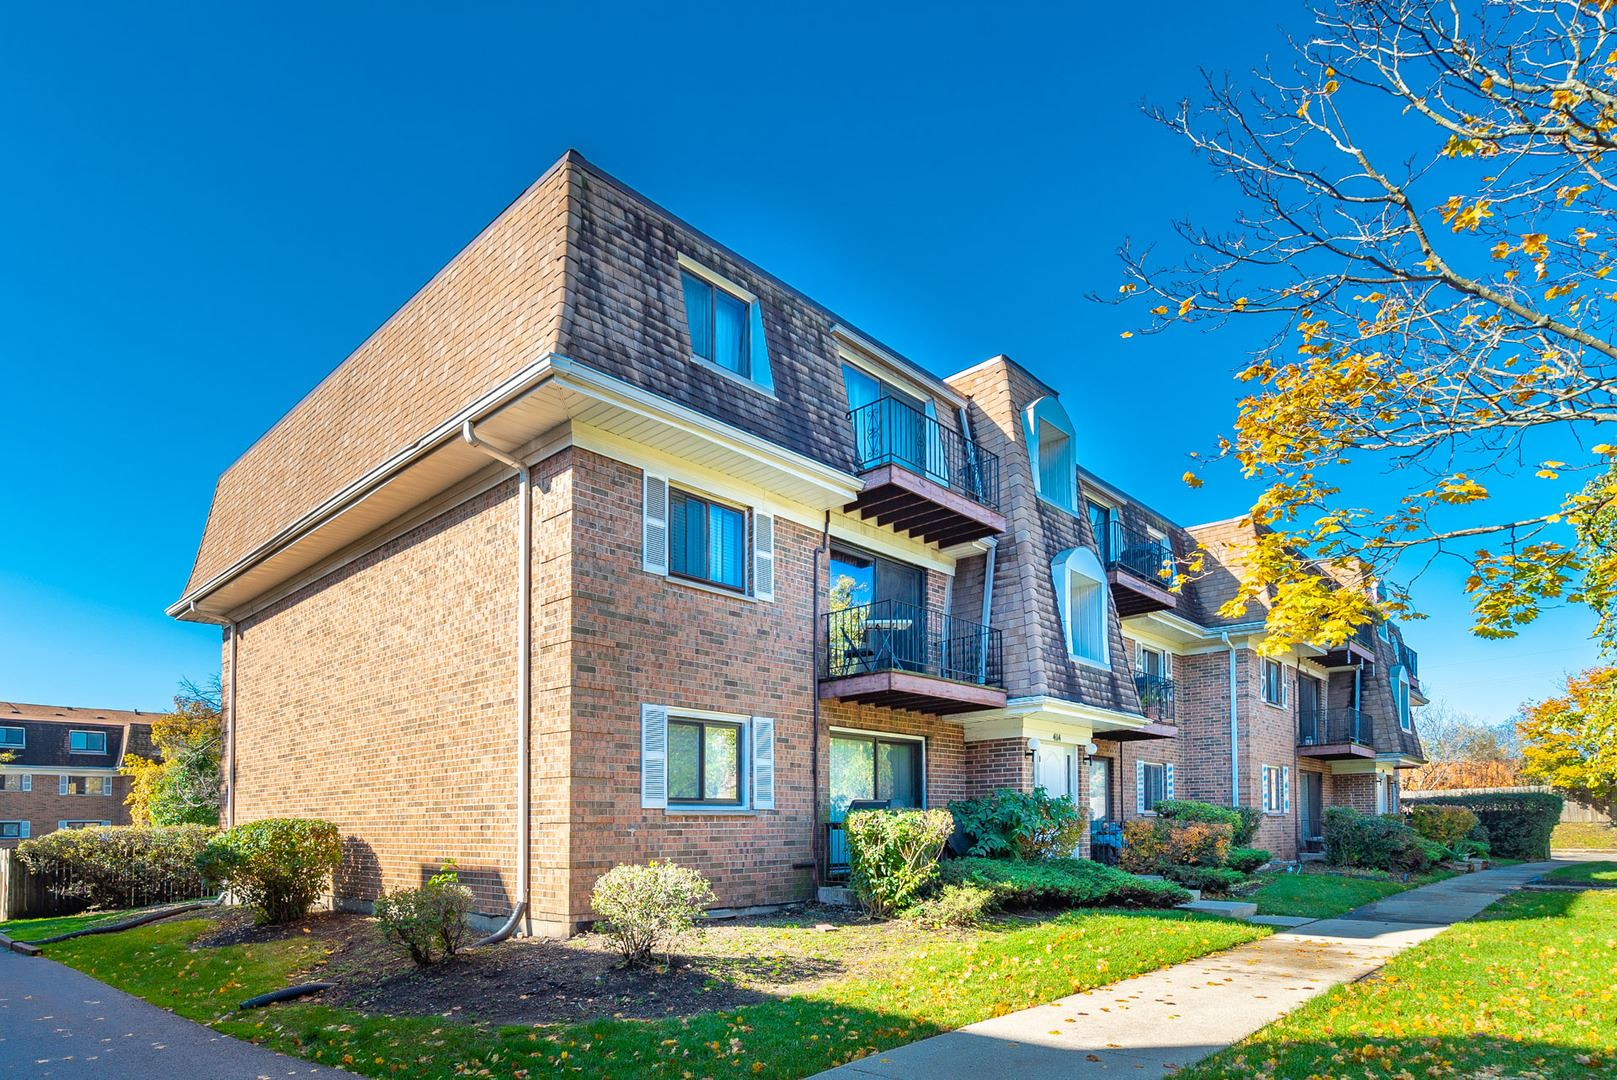 4114 Cove Lane #B, Glenview, IL 60025 - #: 10810703